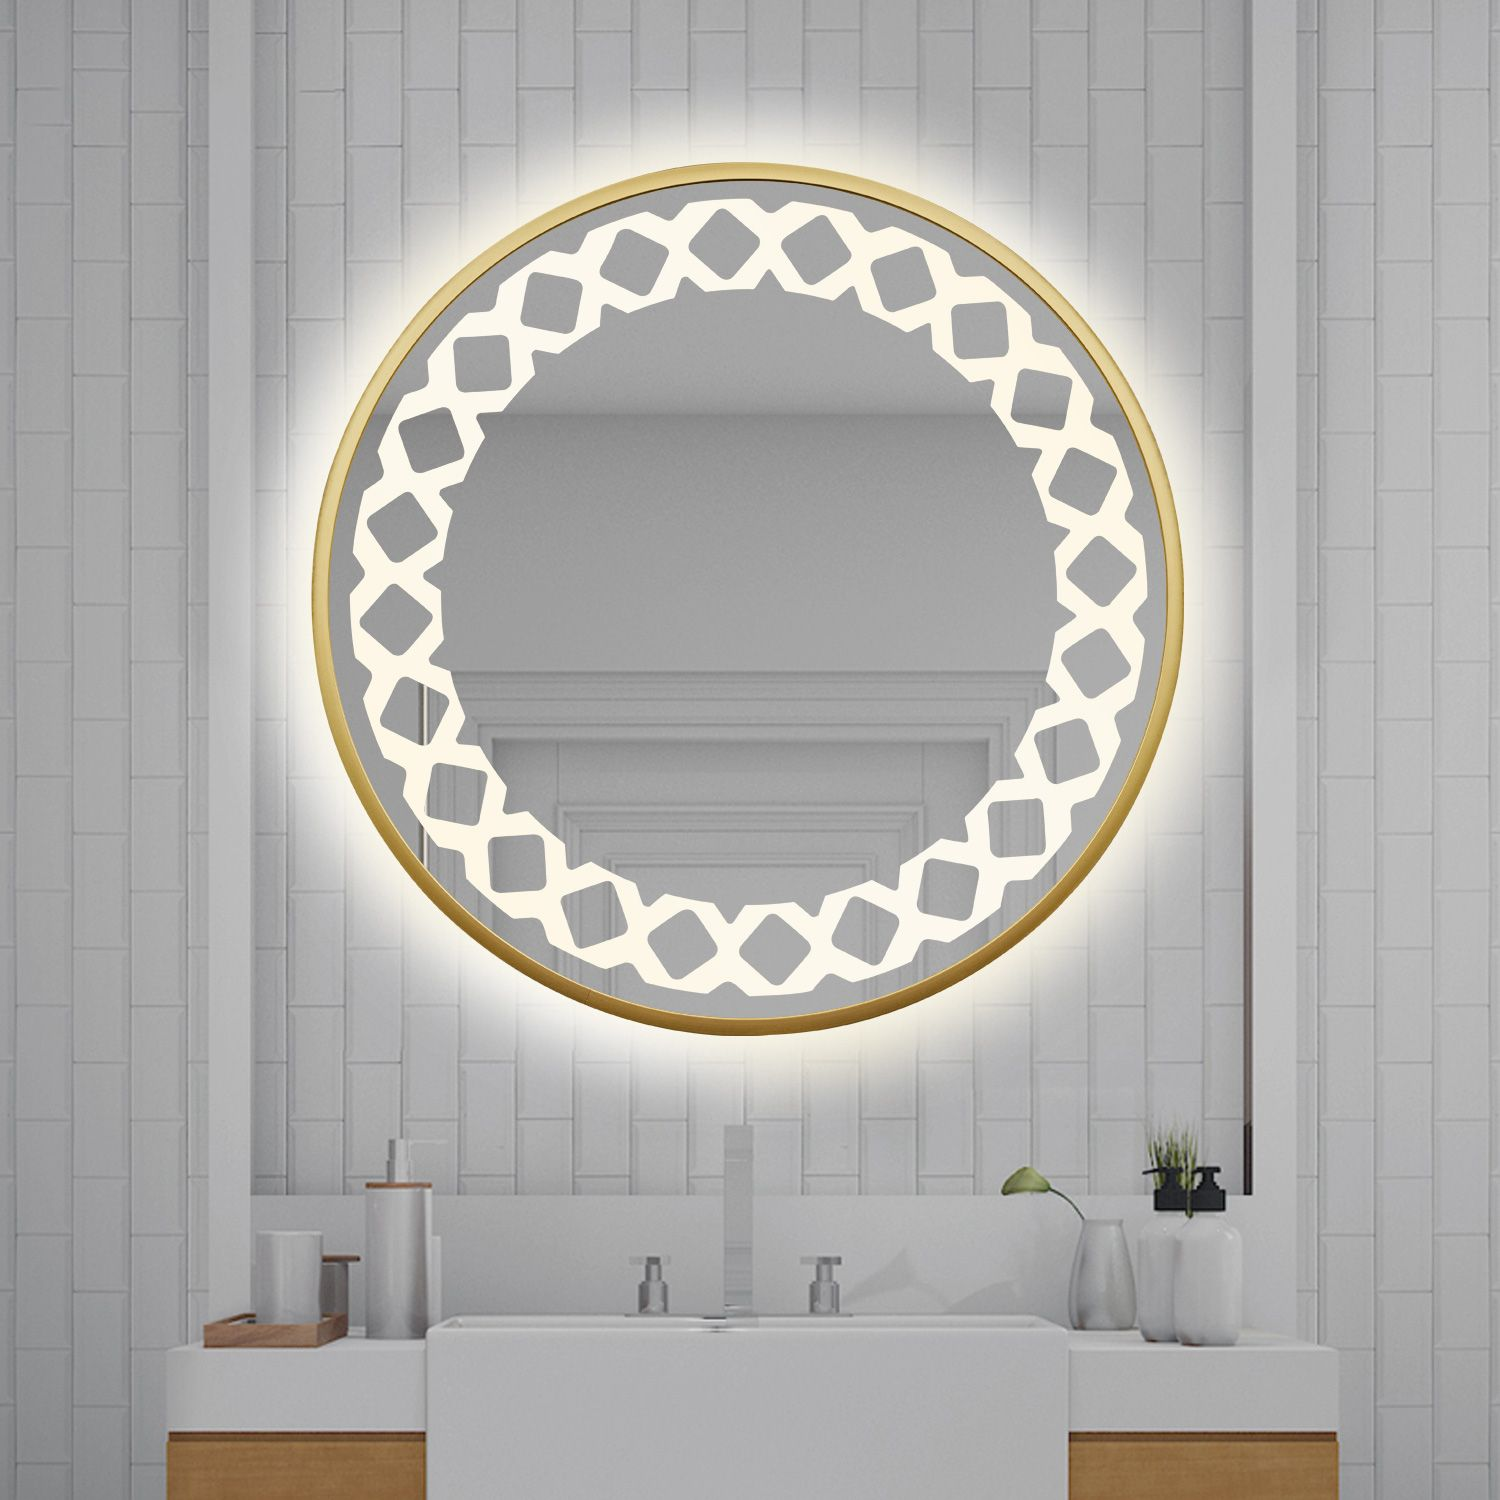 Simple Fashion Design Safe And Easy To Install Led Lighting Consumes Up To 80 Less Energy Than Oth Modern Mirror Wall Mirror Wall Wall Mounted Makeup Mirror